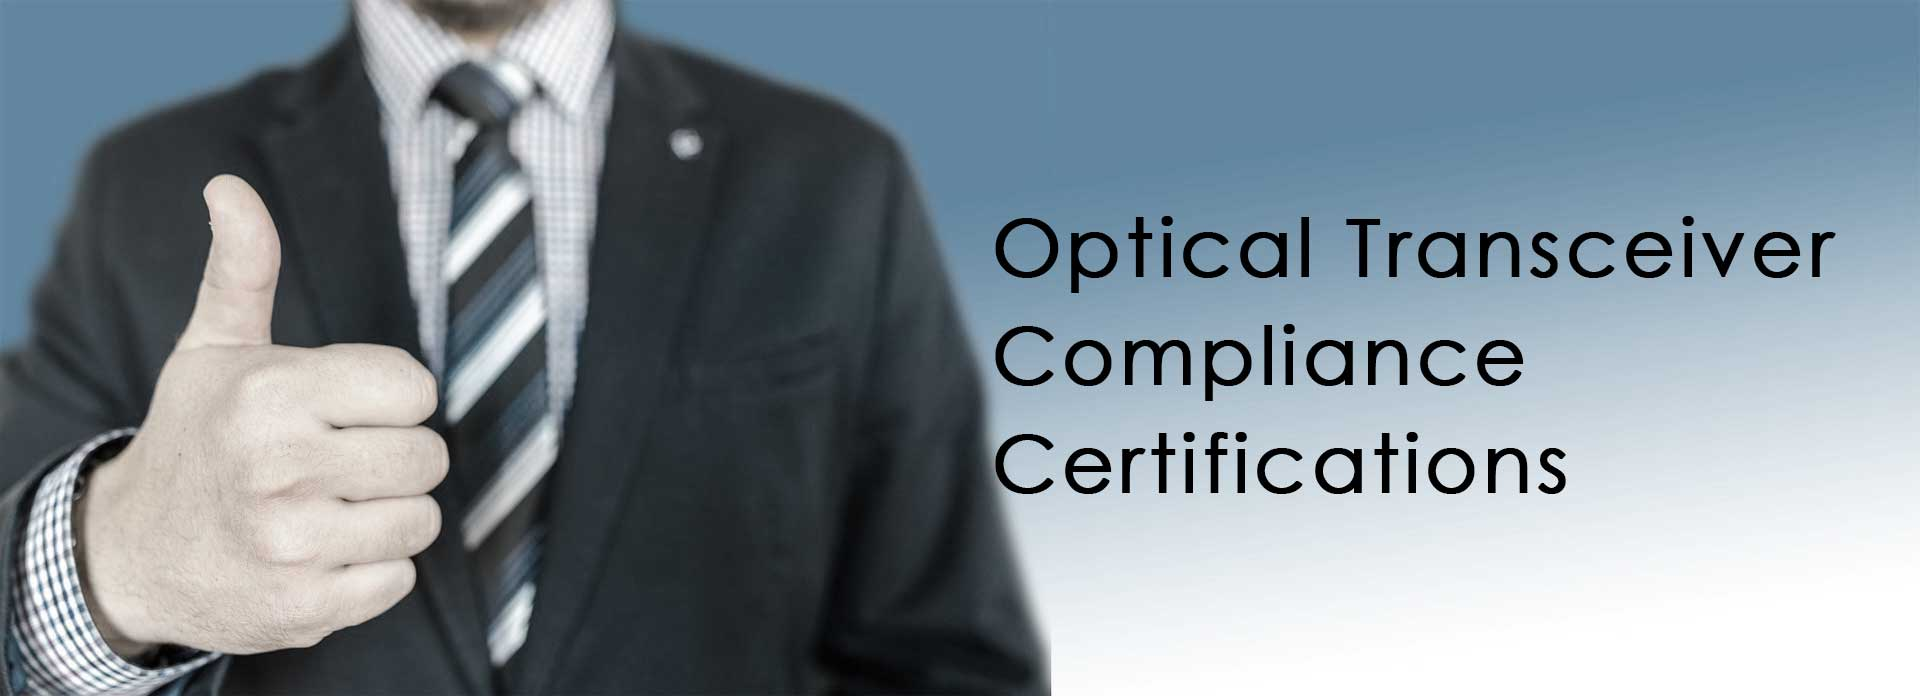 Optical Transceiver Compliance Certifications